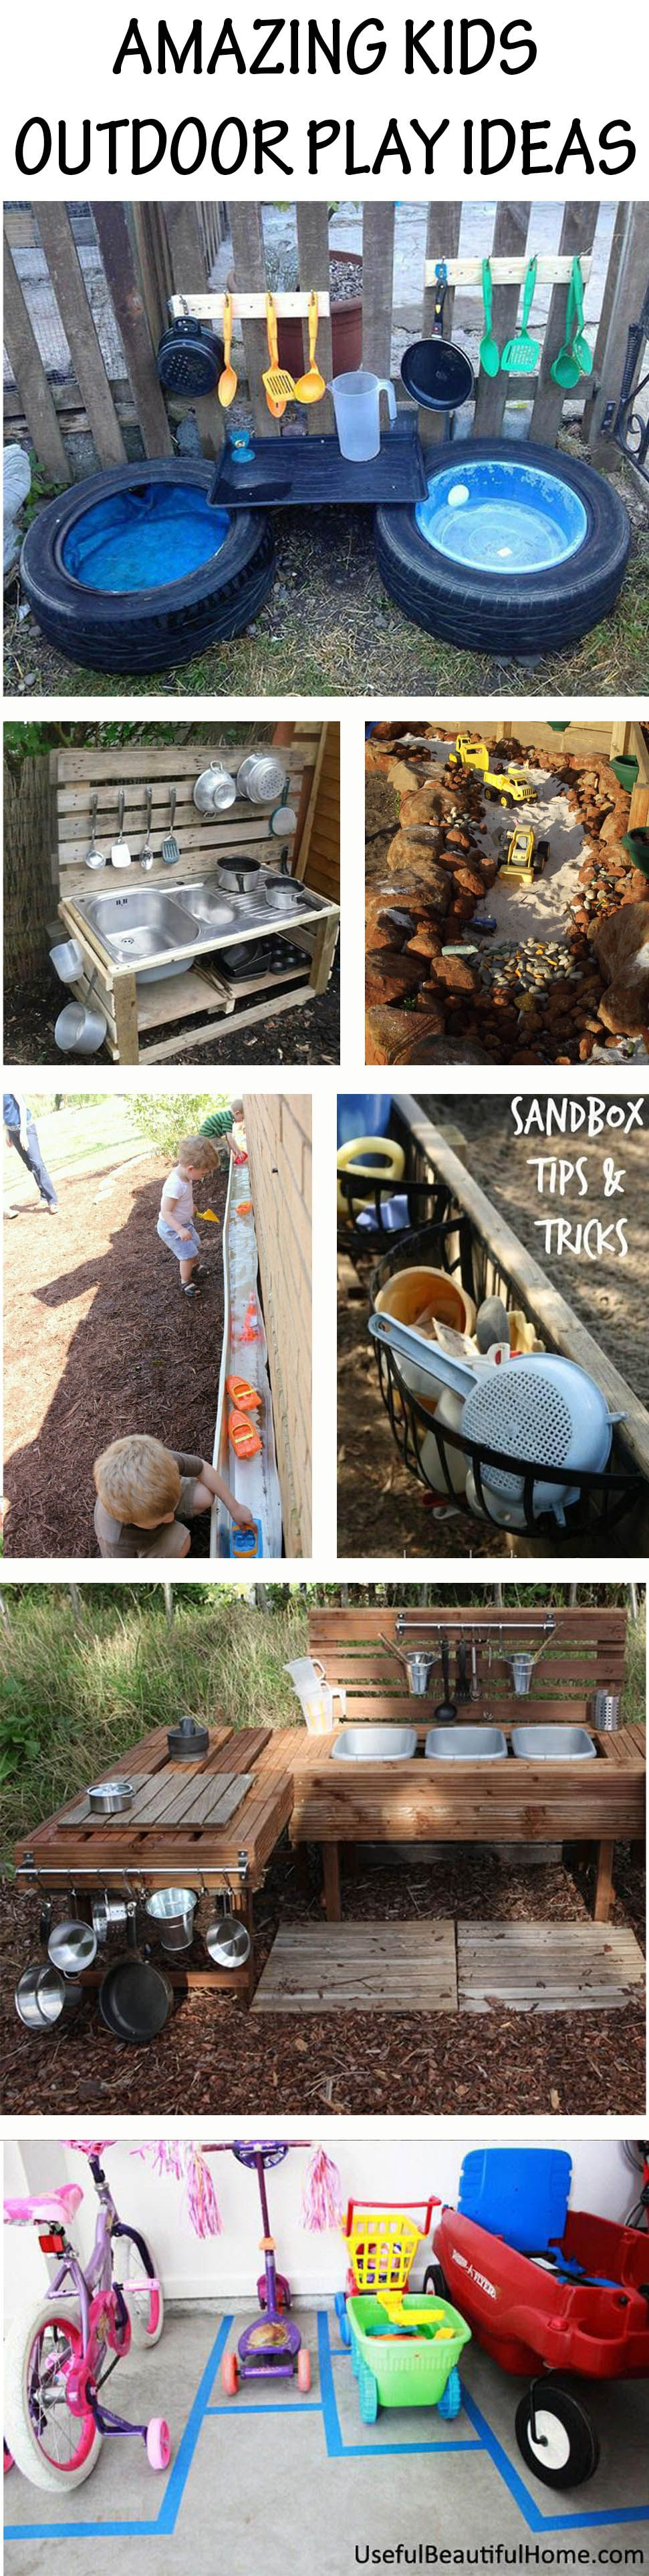 Outdoor Kinder Kids Outdoor Play Ideas Kinder Outdoor Kids Outdoor Play